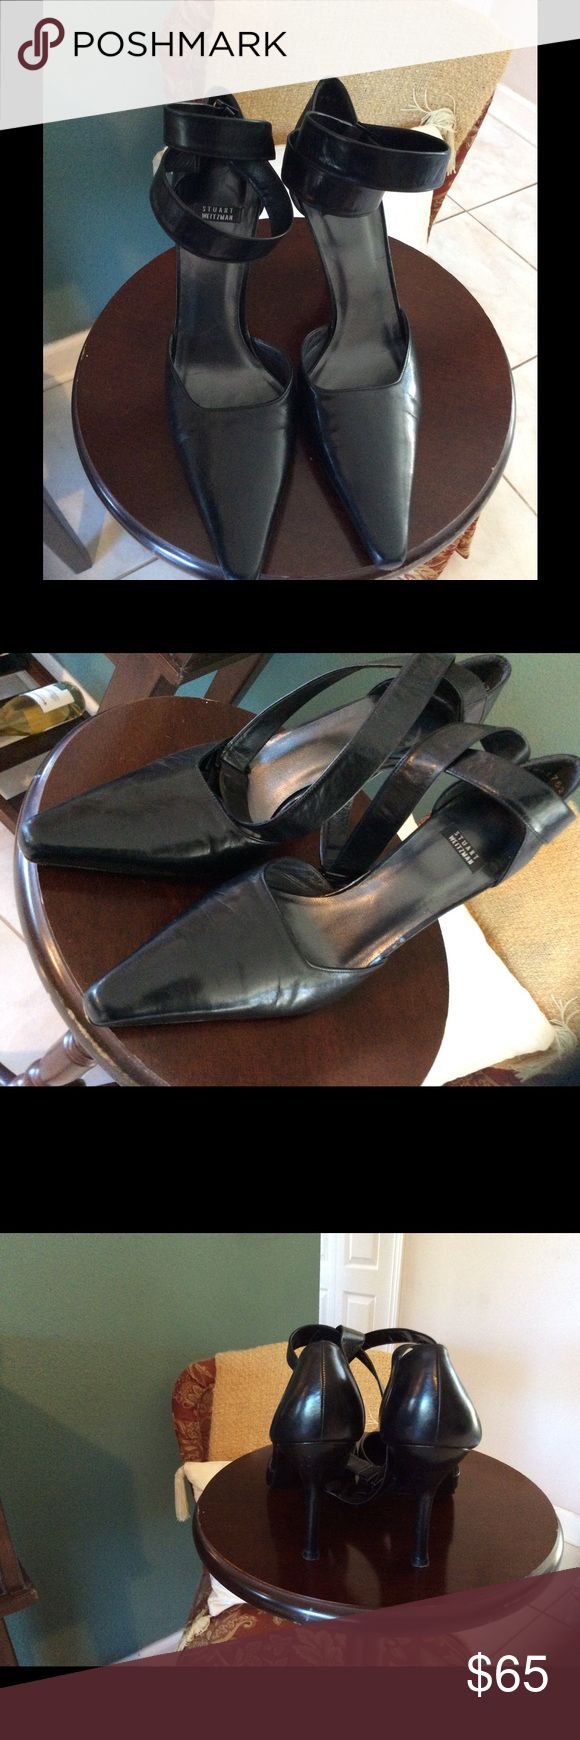 STUART WEITZMAN LEATHER HEELS SEXY LEATHER SHOES WITH STRAPS CRISSCROSSING THE ANKLES! VERY GOOD CONDITION! SOFT BEAUTIFUL LEATHER. Stuart Weitzman Shoes Heels